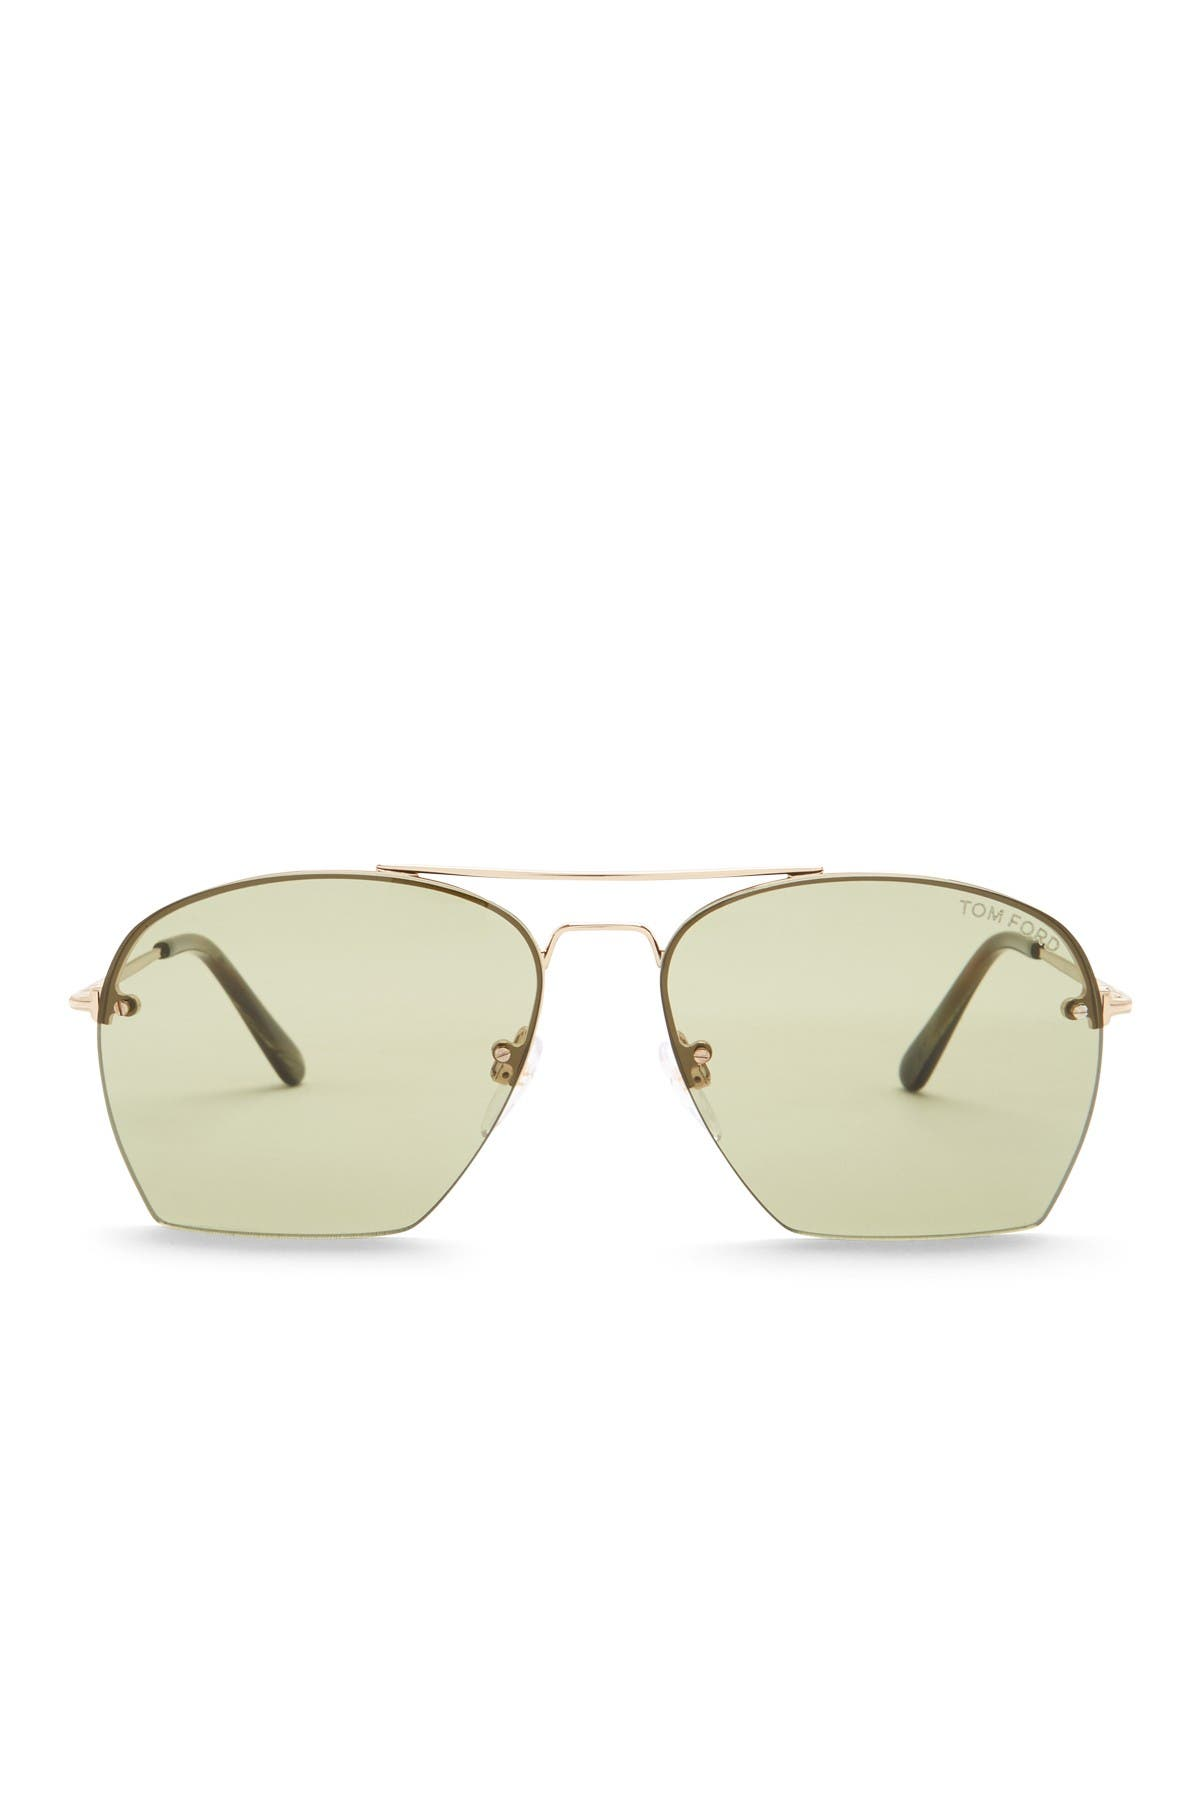 Image of Tom Ford Modified 58mm Aviator Sunglasses